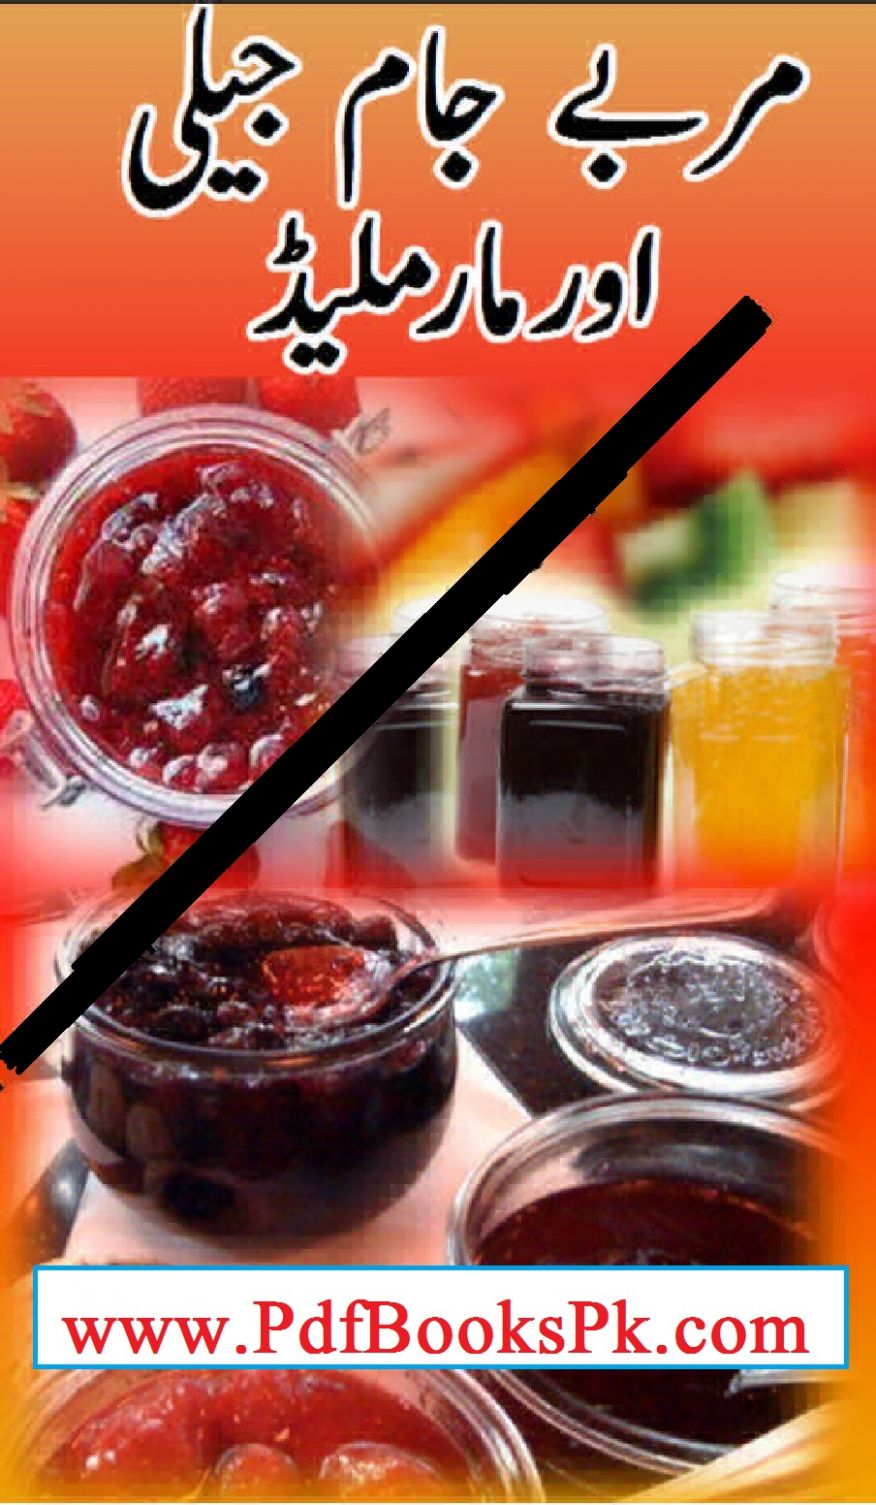 Jams, Jelly and Marmalade Recipes Book in Urdu by pdfbookspk ...